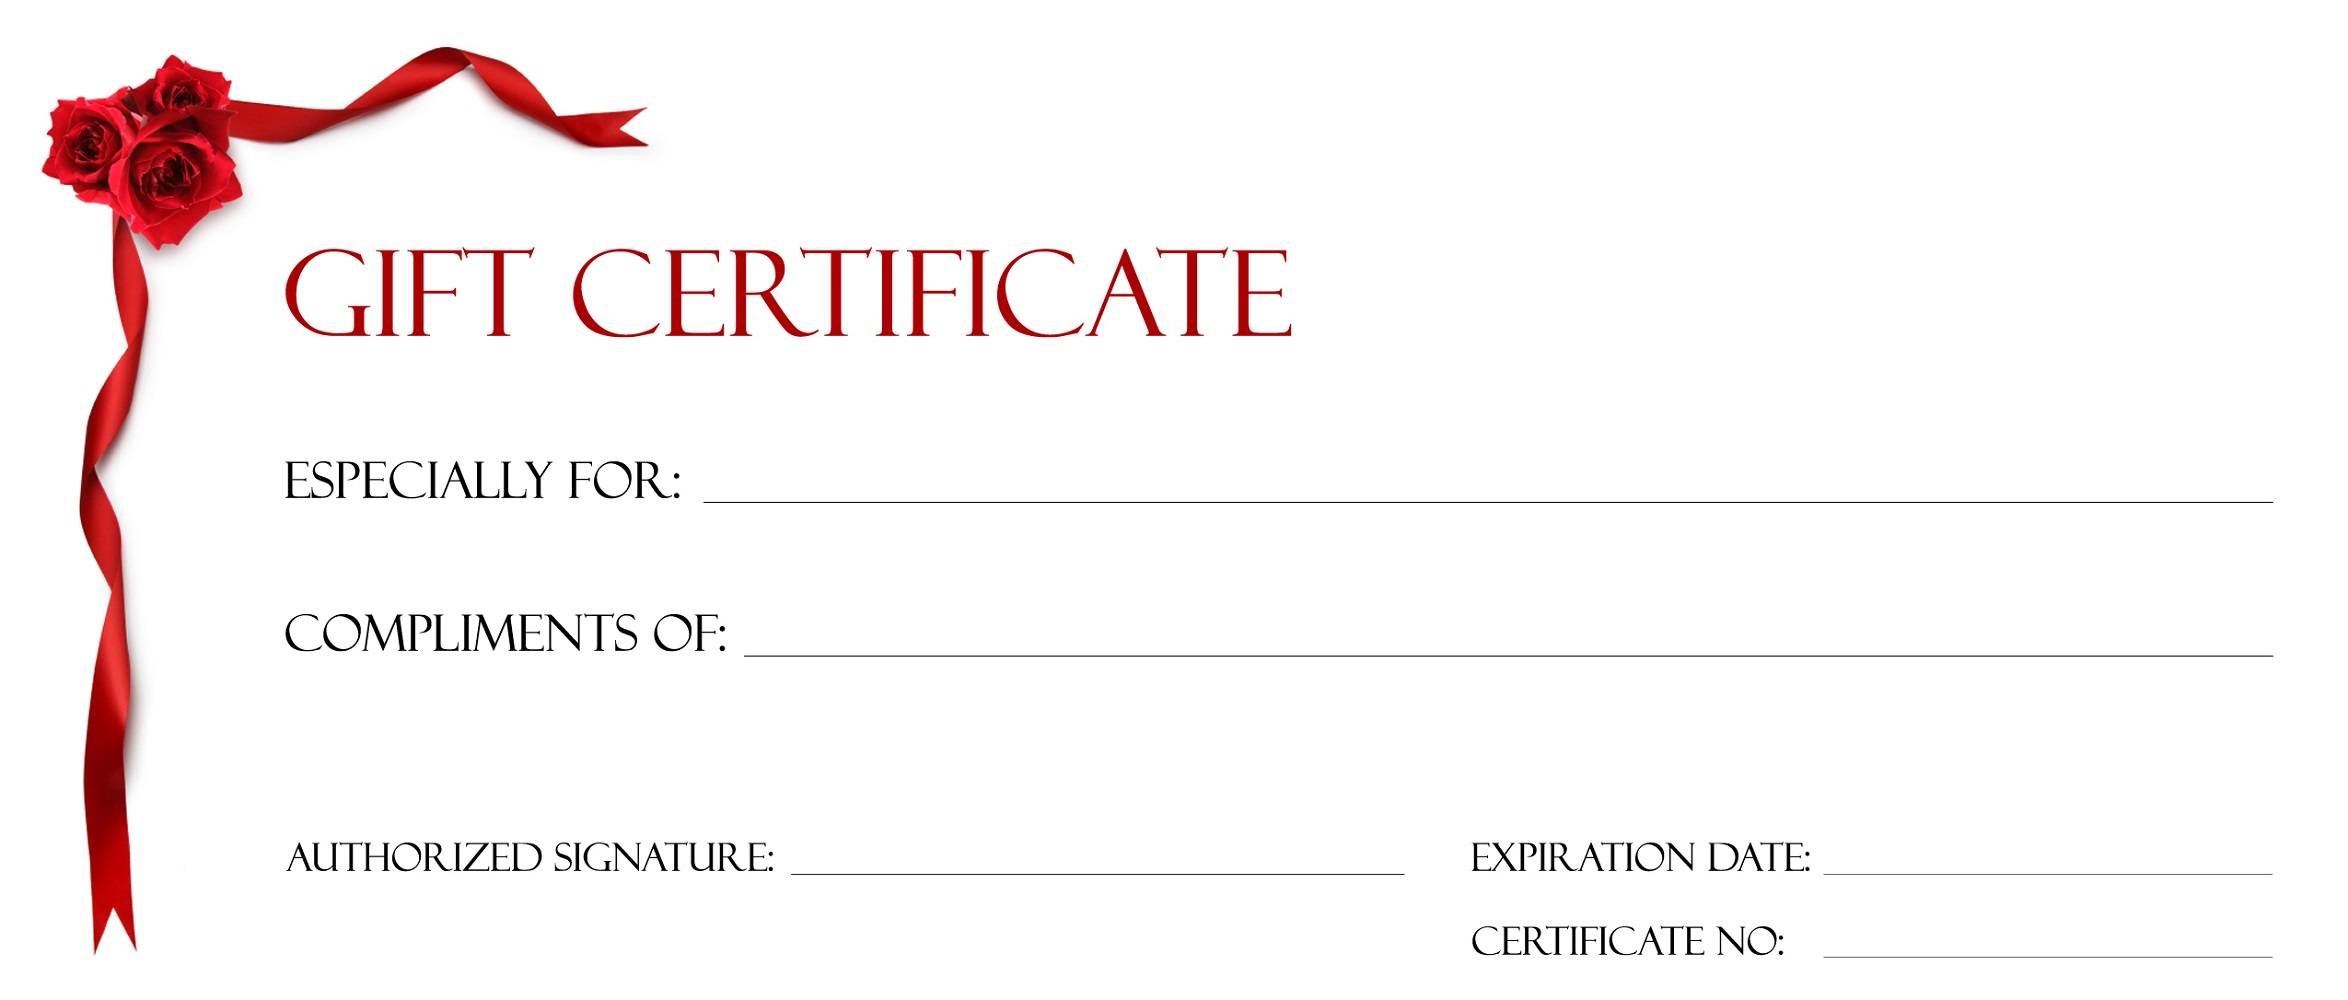 gift certificate template design